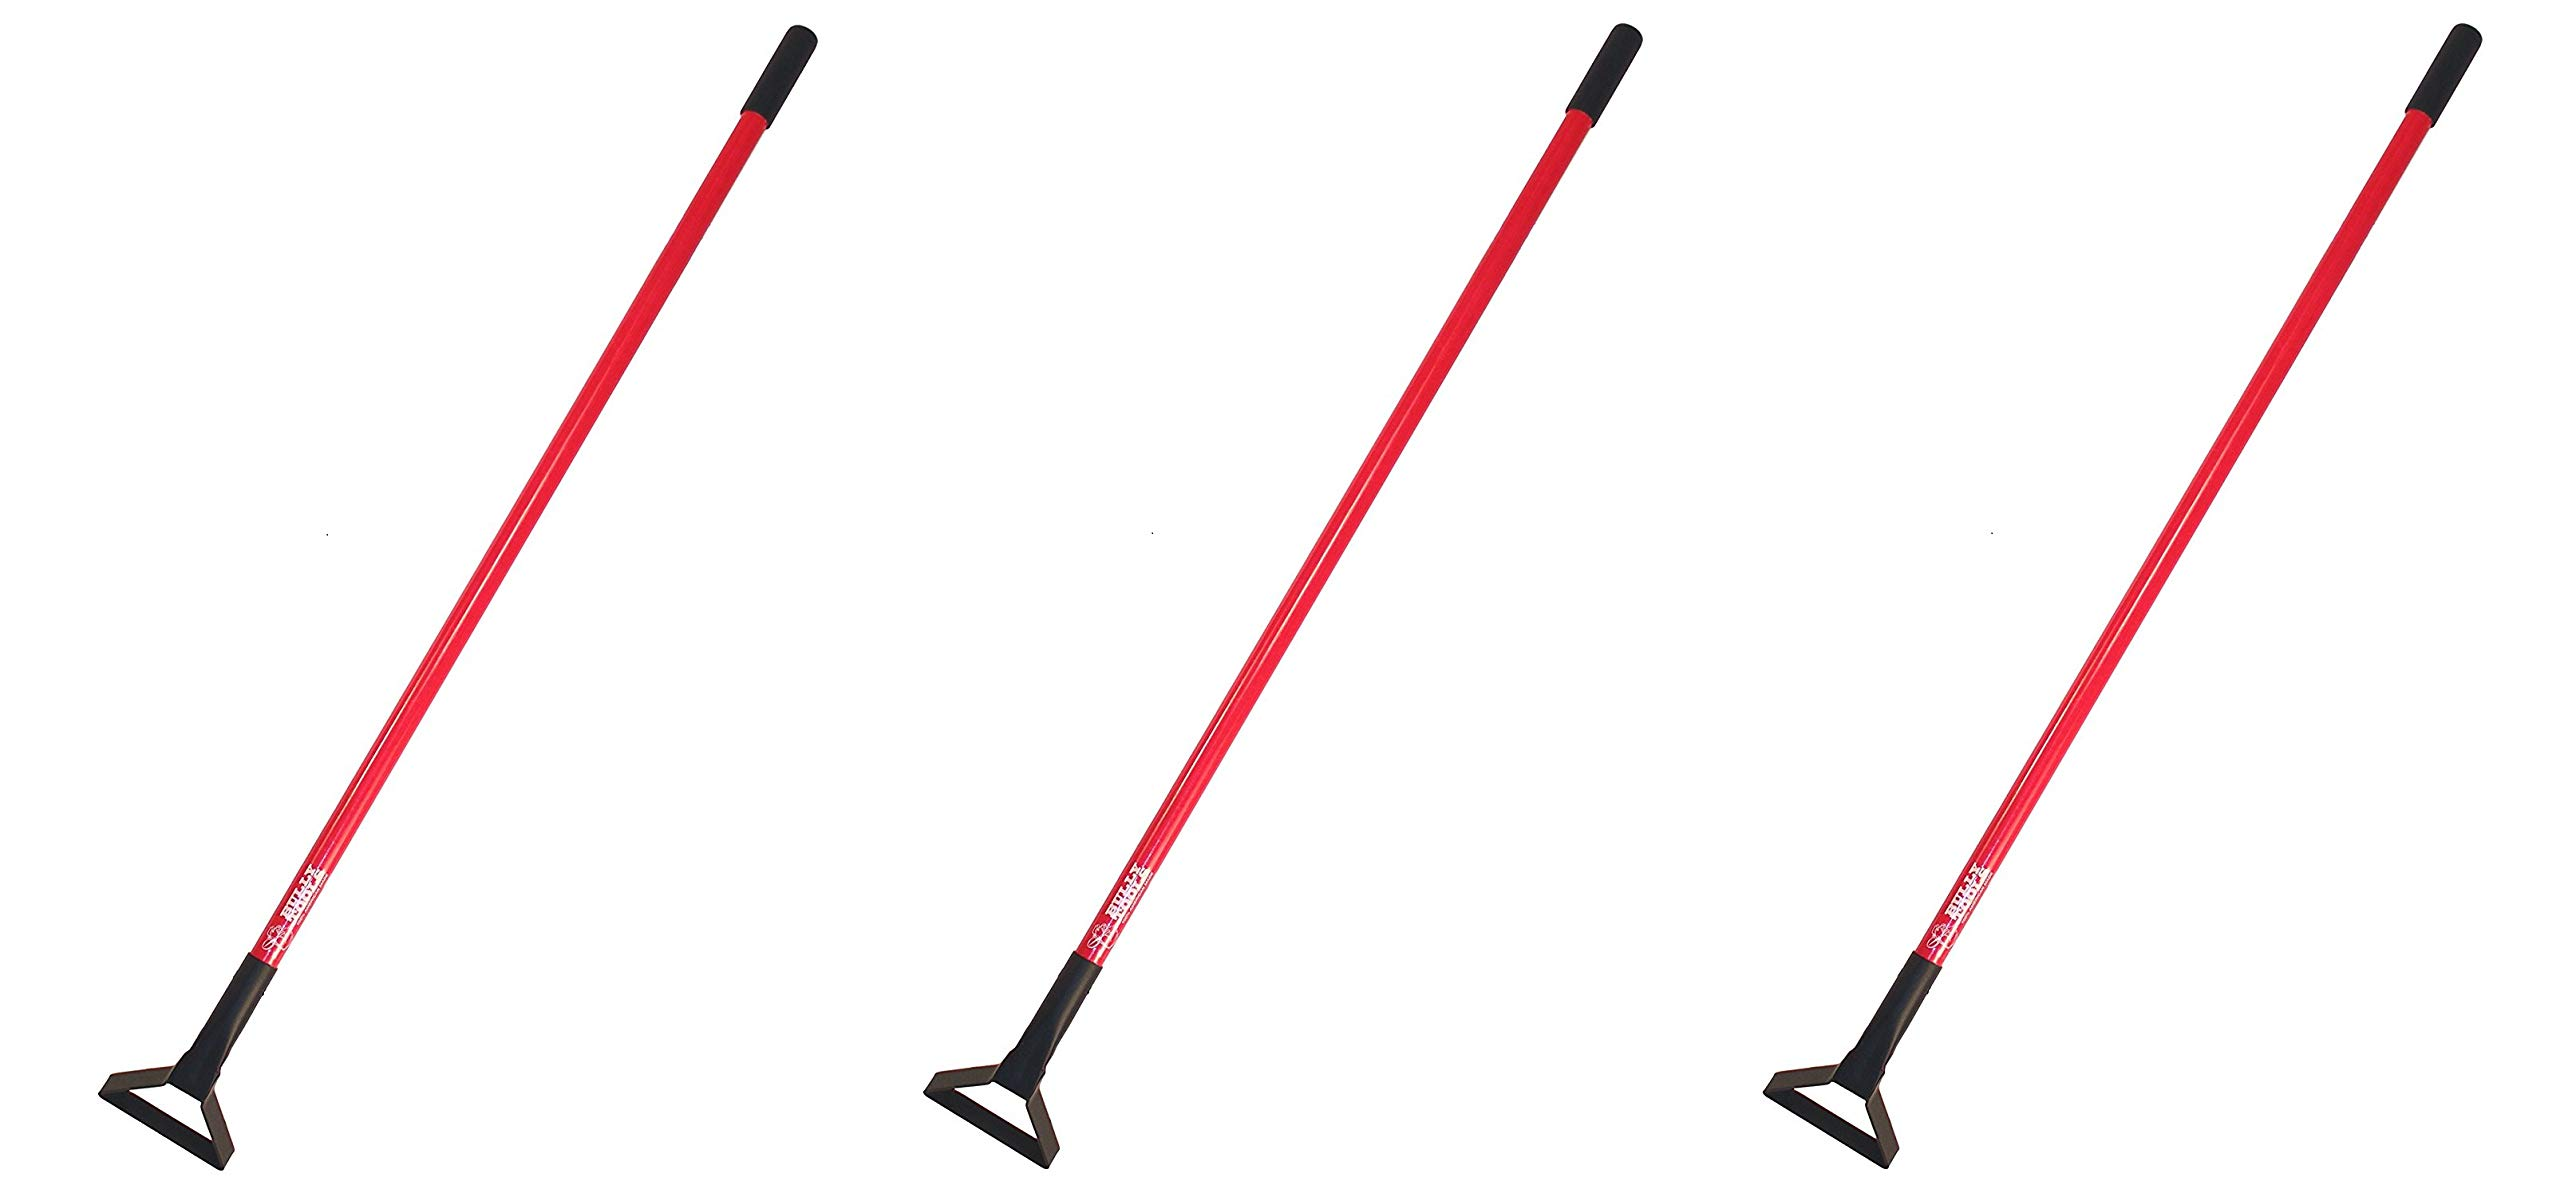 Bully Tools 92348 12-Gauge Loop Hoe with Fiberglass Handle (Pack of 3)